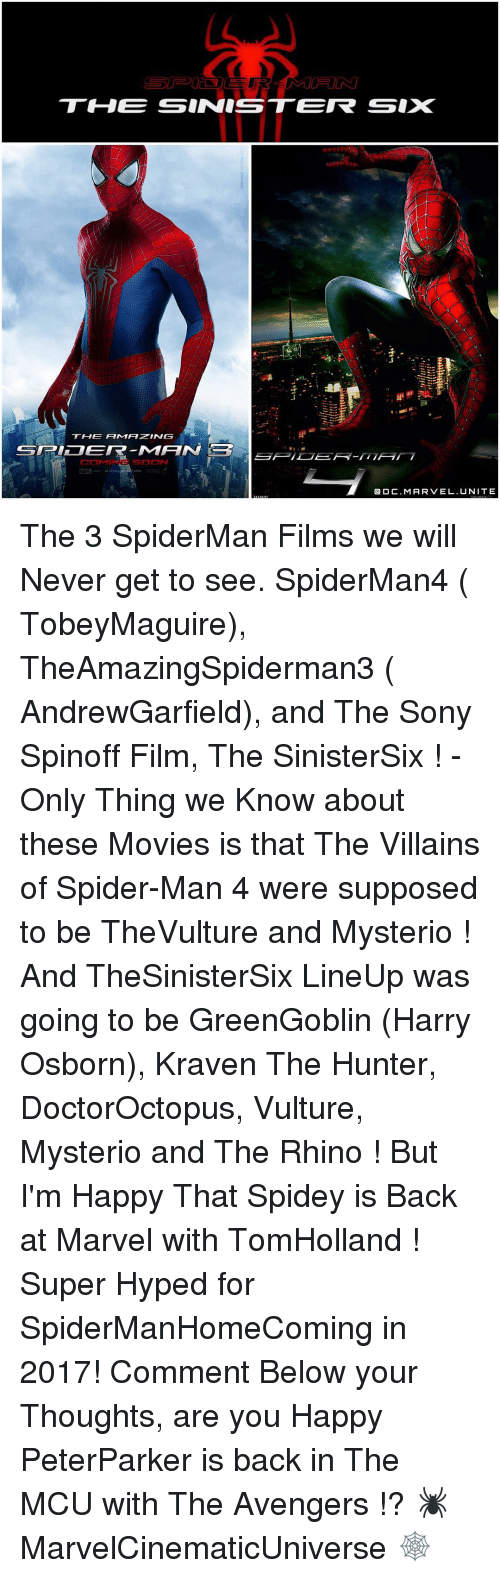 Hype, Memes, and Sony: TH00E SINNISSTEIR SIX  Q OC. MARVEL. UNITE The 3 SpiderMan Films we will Never get to see. SpiderMan4 ( TobeyMaguire), TheAmazingSpiderman3 ( AndrewGarfield), and The Sony Spinoff Film, The SinisterSix ! - Only Thing we Know about these Movies is that The Villains of Spider-Man 4 were supposed to be TheVulture and Mysterio ! And TheSinisterSix LineUp was going to be GreenGoblin (Harry Osborn), Kraven The Hunter, DoctorOctopus, Vulture, Mysterio and The Rhino ! But I'm Happy That Spidey is Back at Marvel with TomHolland ! Super Hyped for SpiderManHomeComing in 2017! Comment Below your Thoughts, are you Happy PeterParker is back in The MCU with The Avengers !? 🕷 MarvelCinematicUniverse 🕸